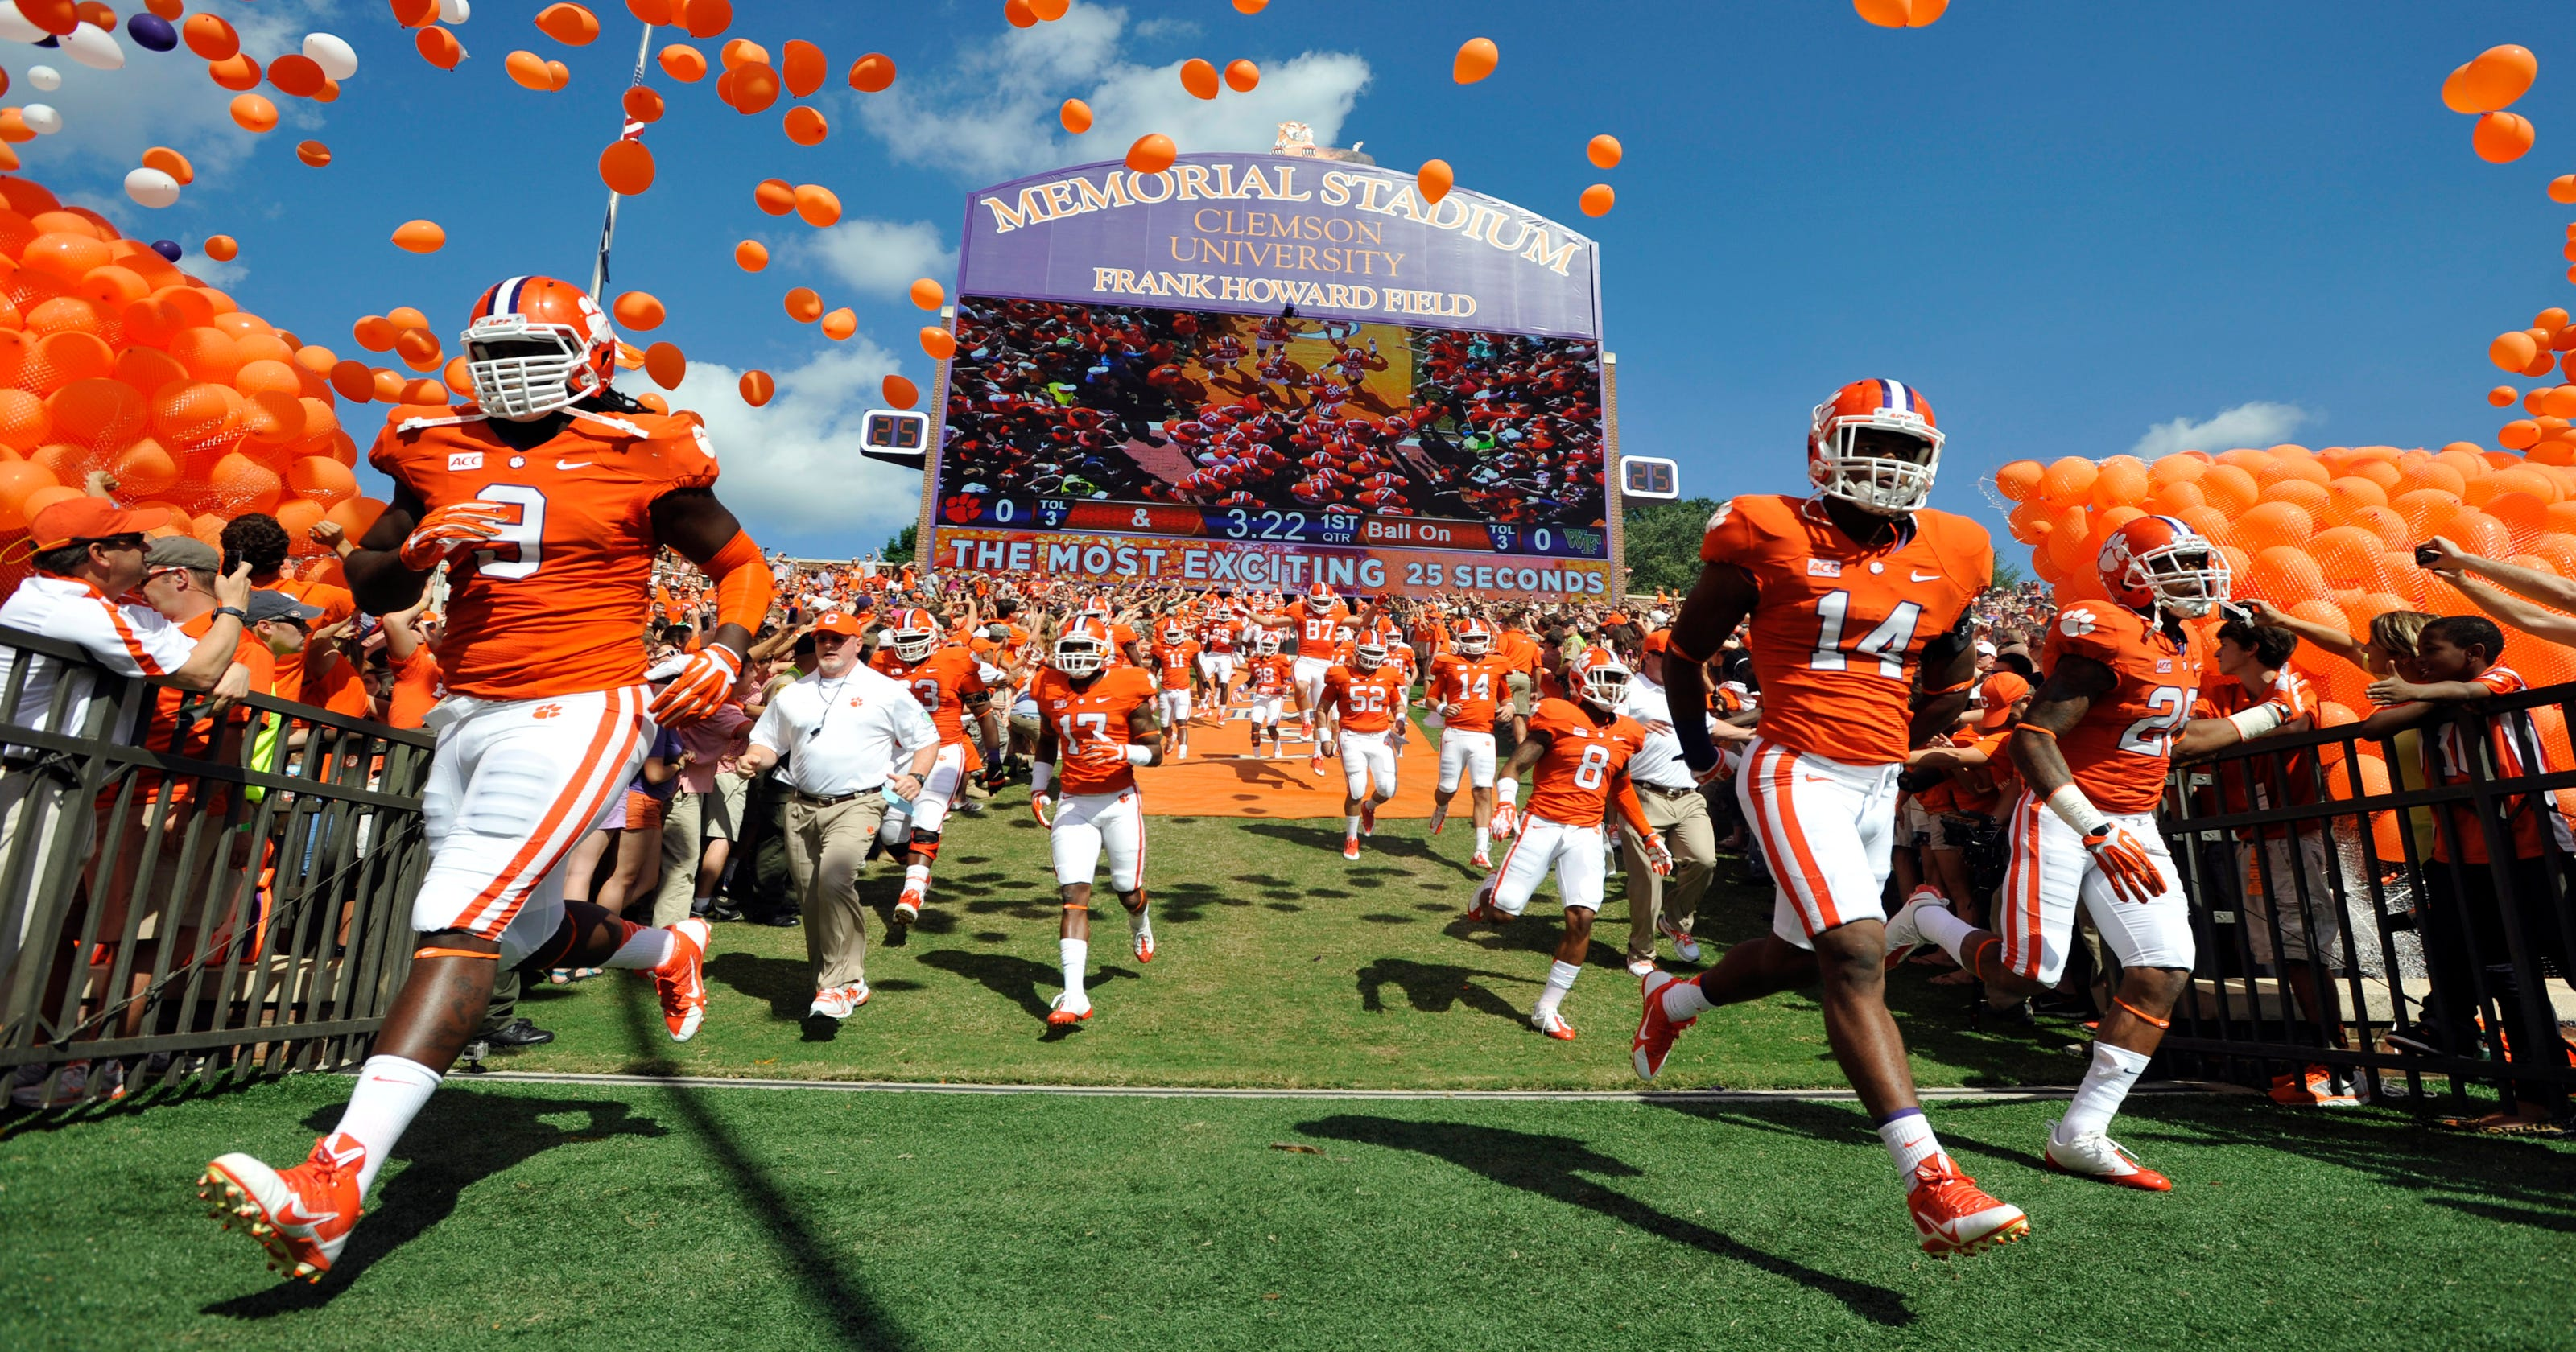 Best college football game-day atmosphere? You decide!